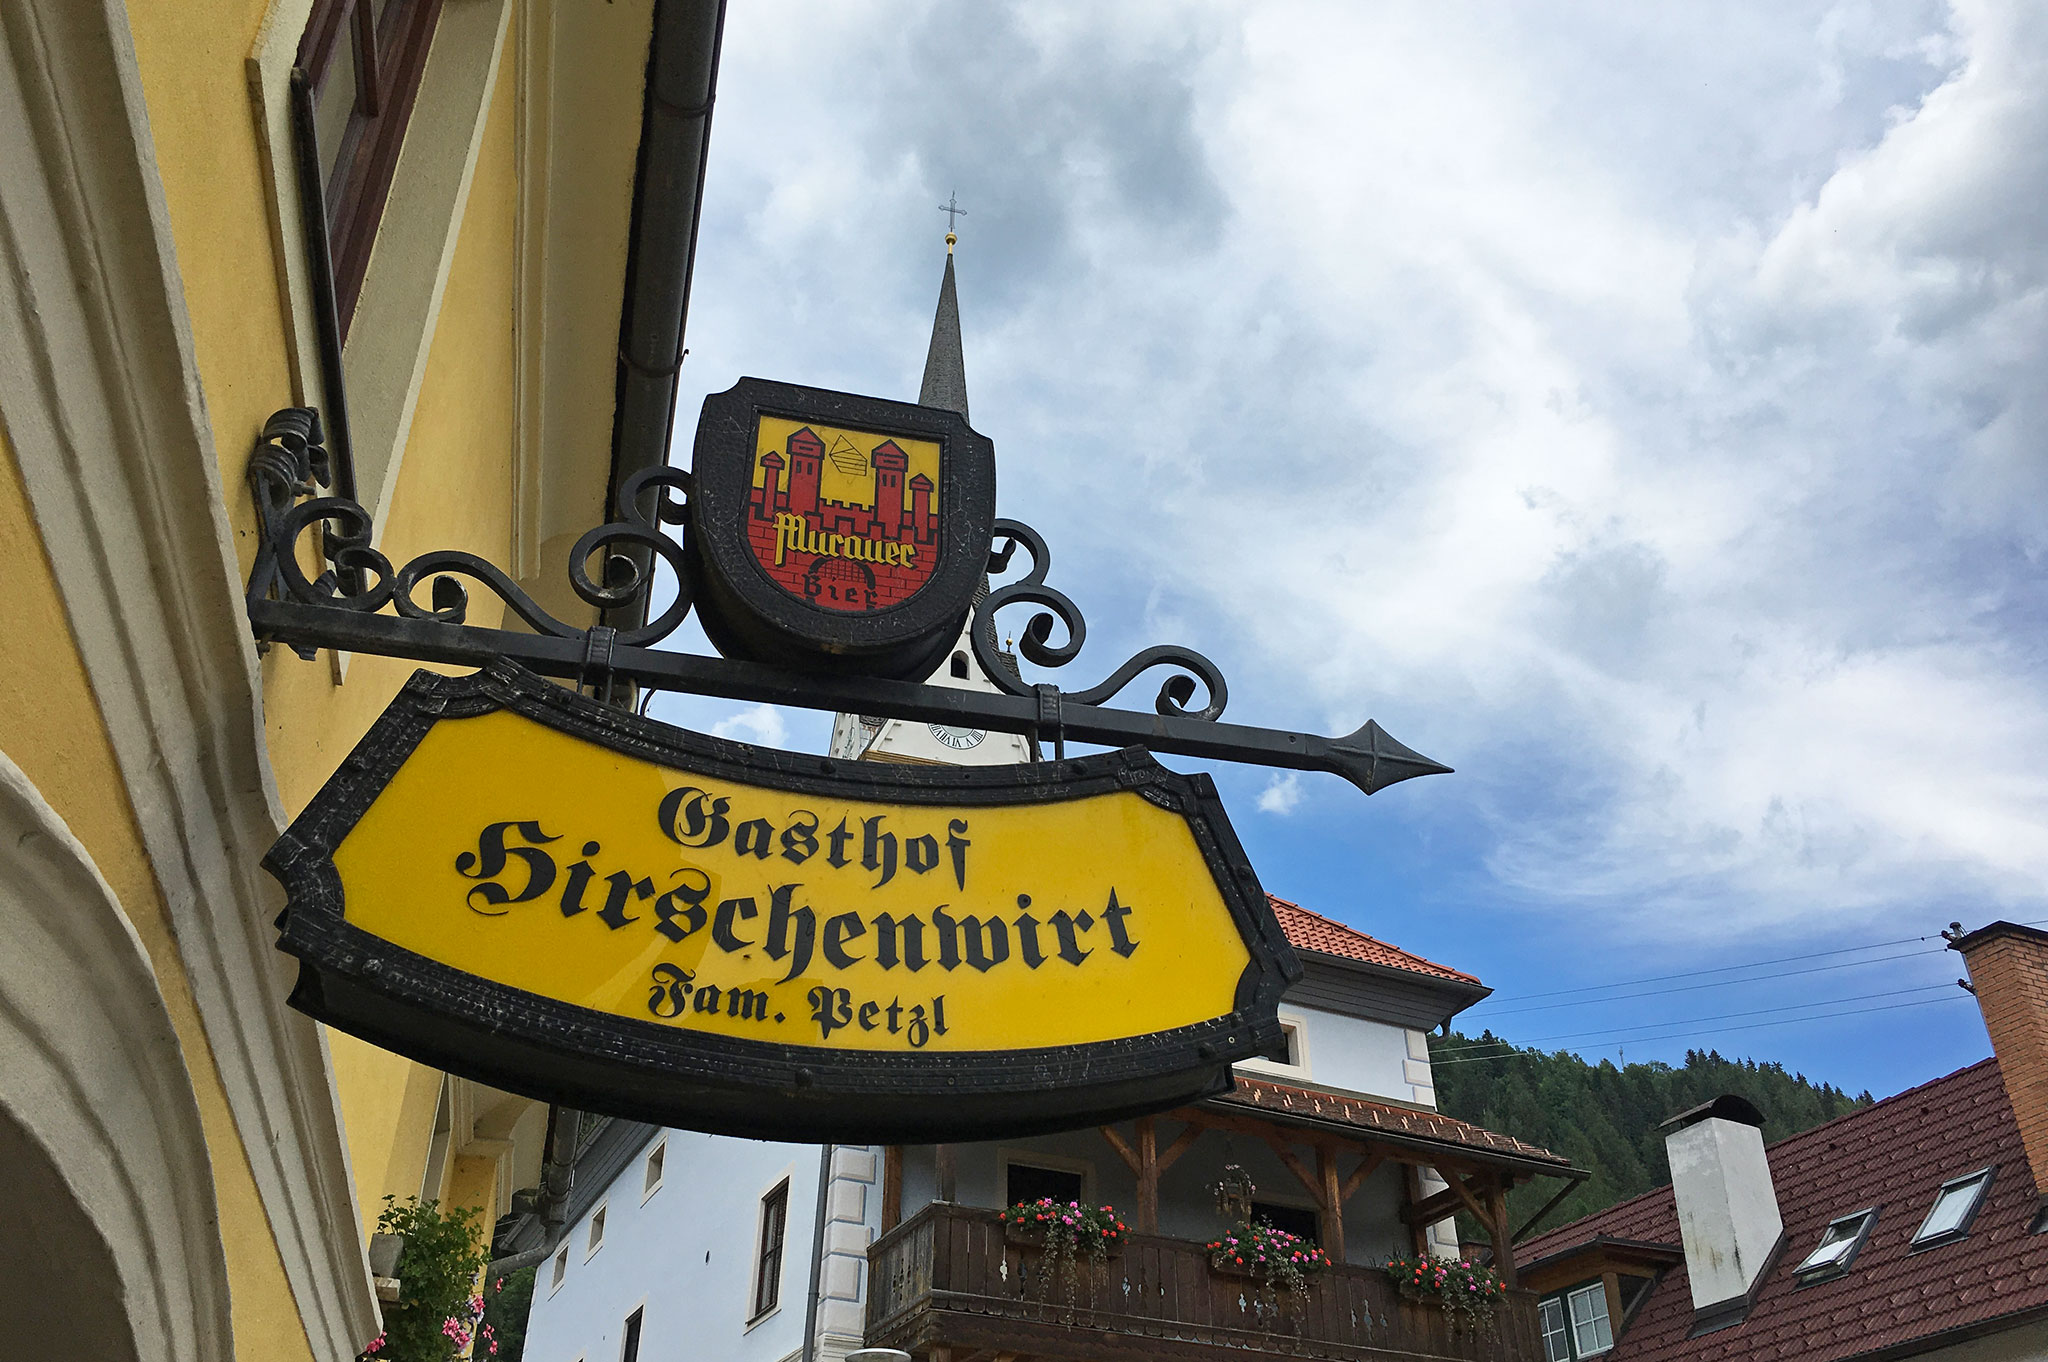 Gasthaus Hirschenwirt, open since 1423, one of the oldest in Styria, Austria